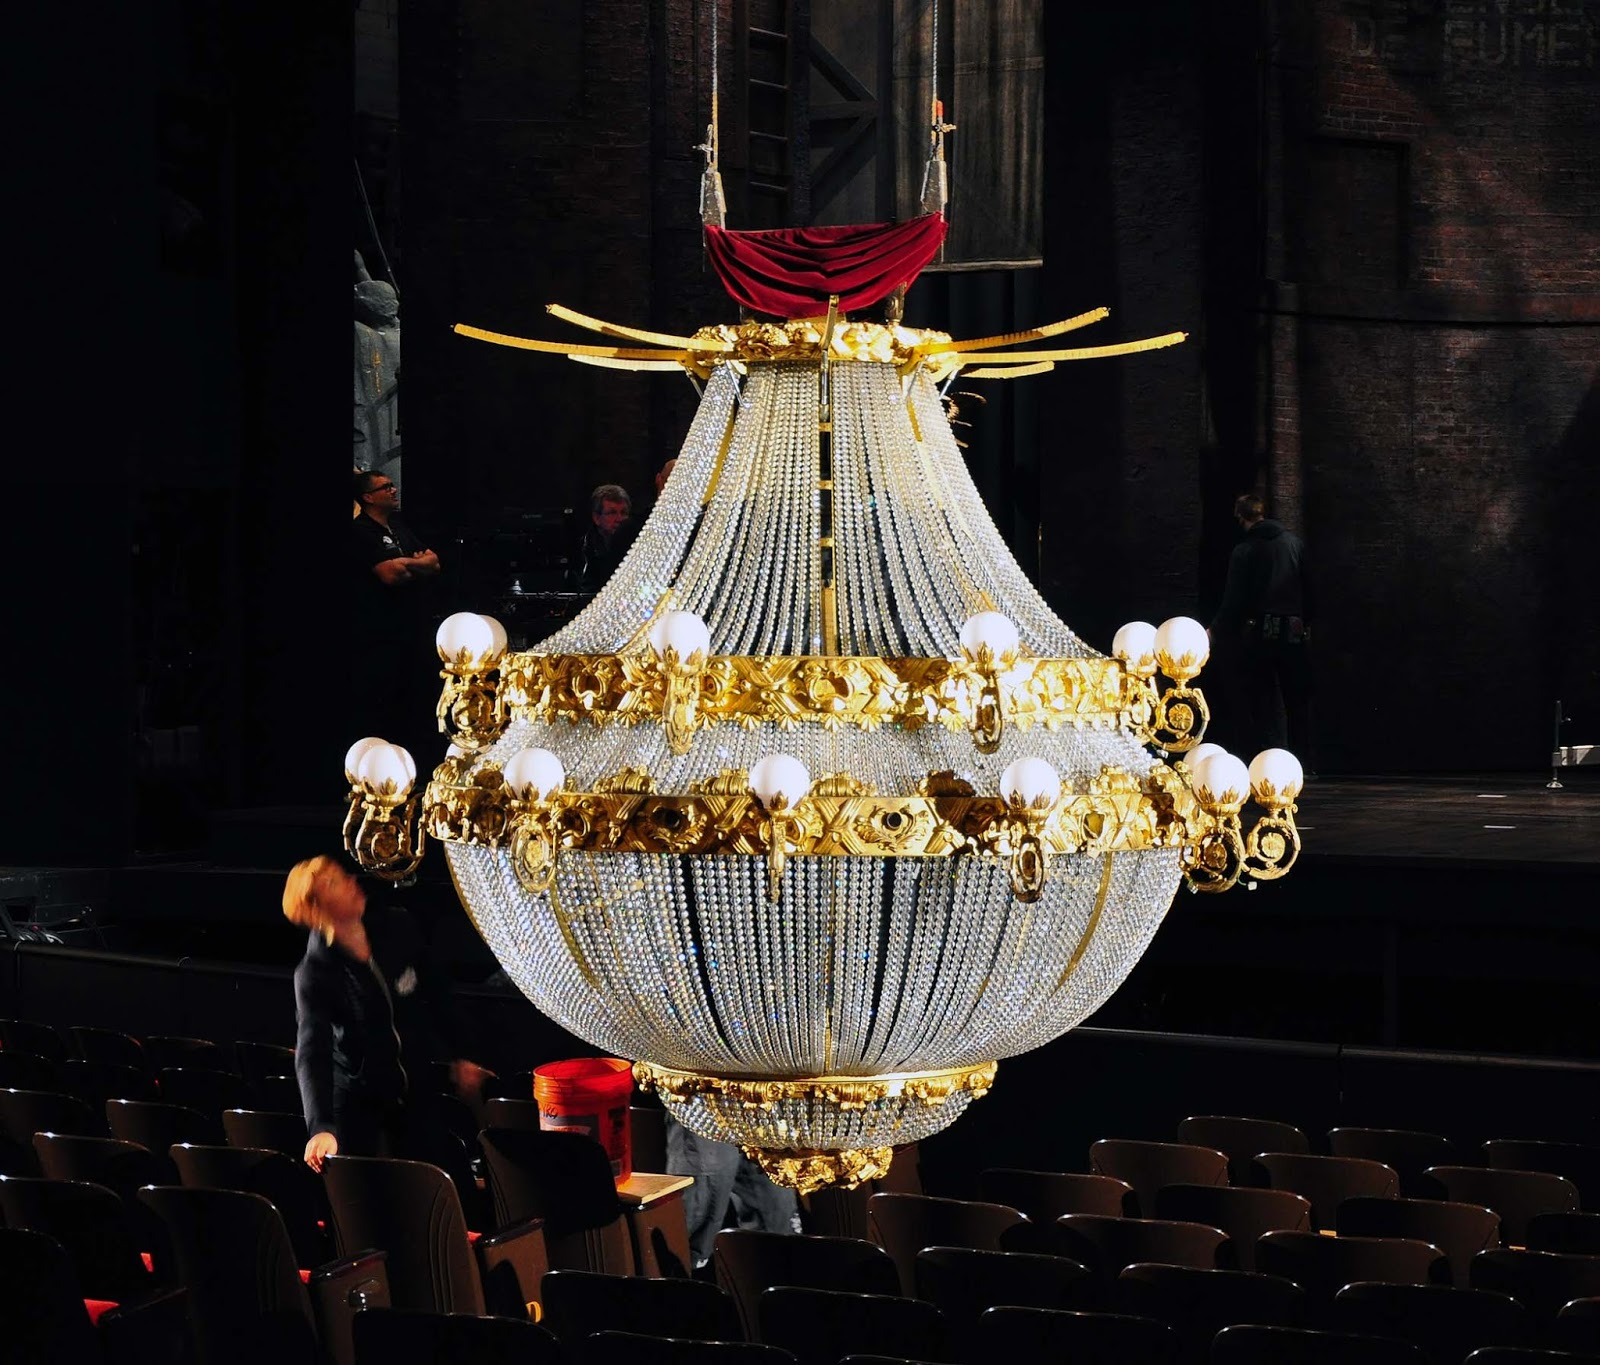 Ideal The Phantom of the Opera at SHN Up Close with the Chandelier